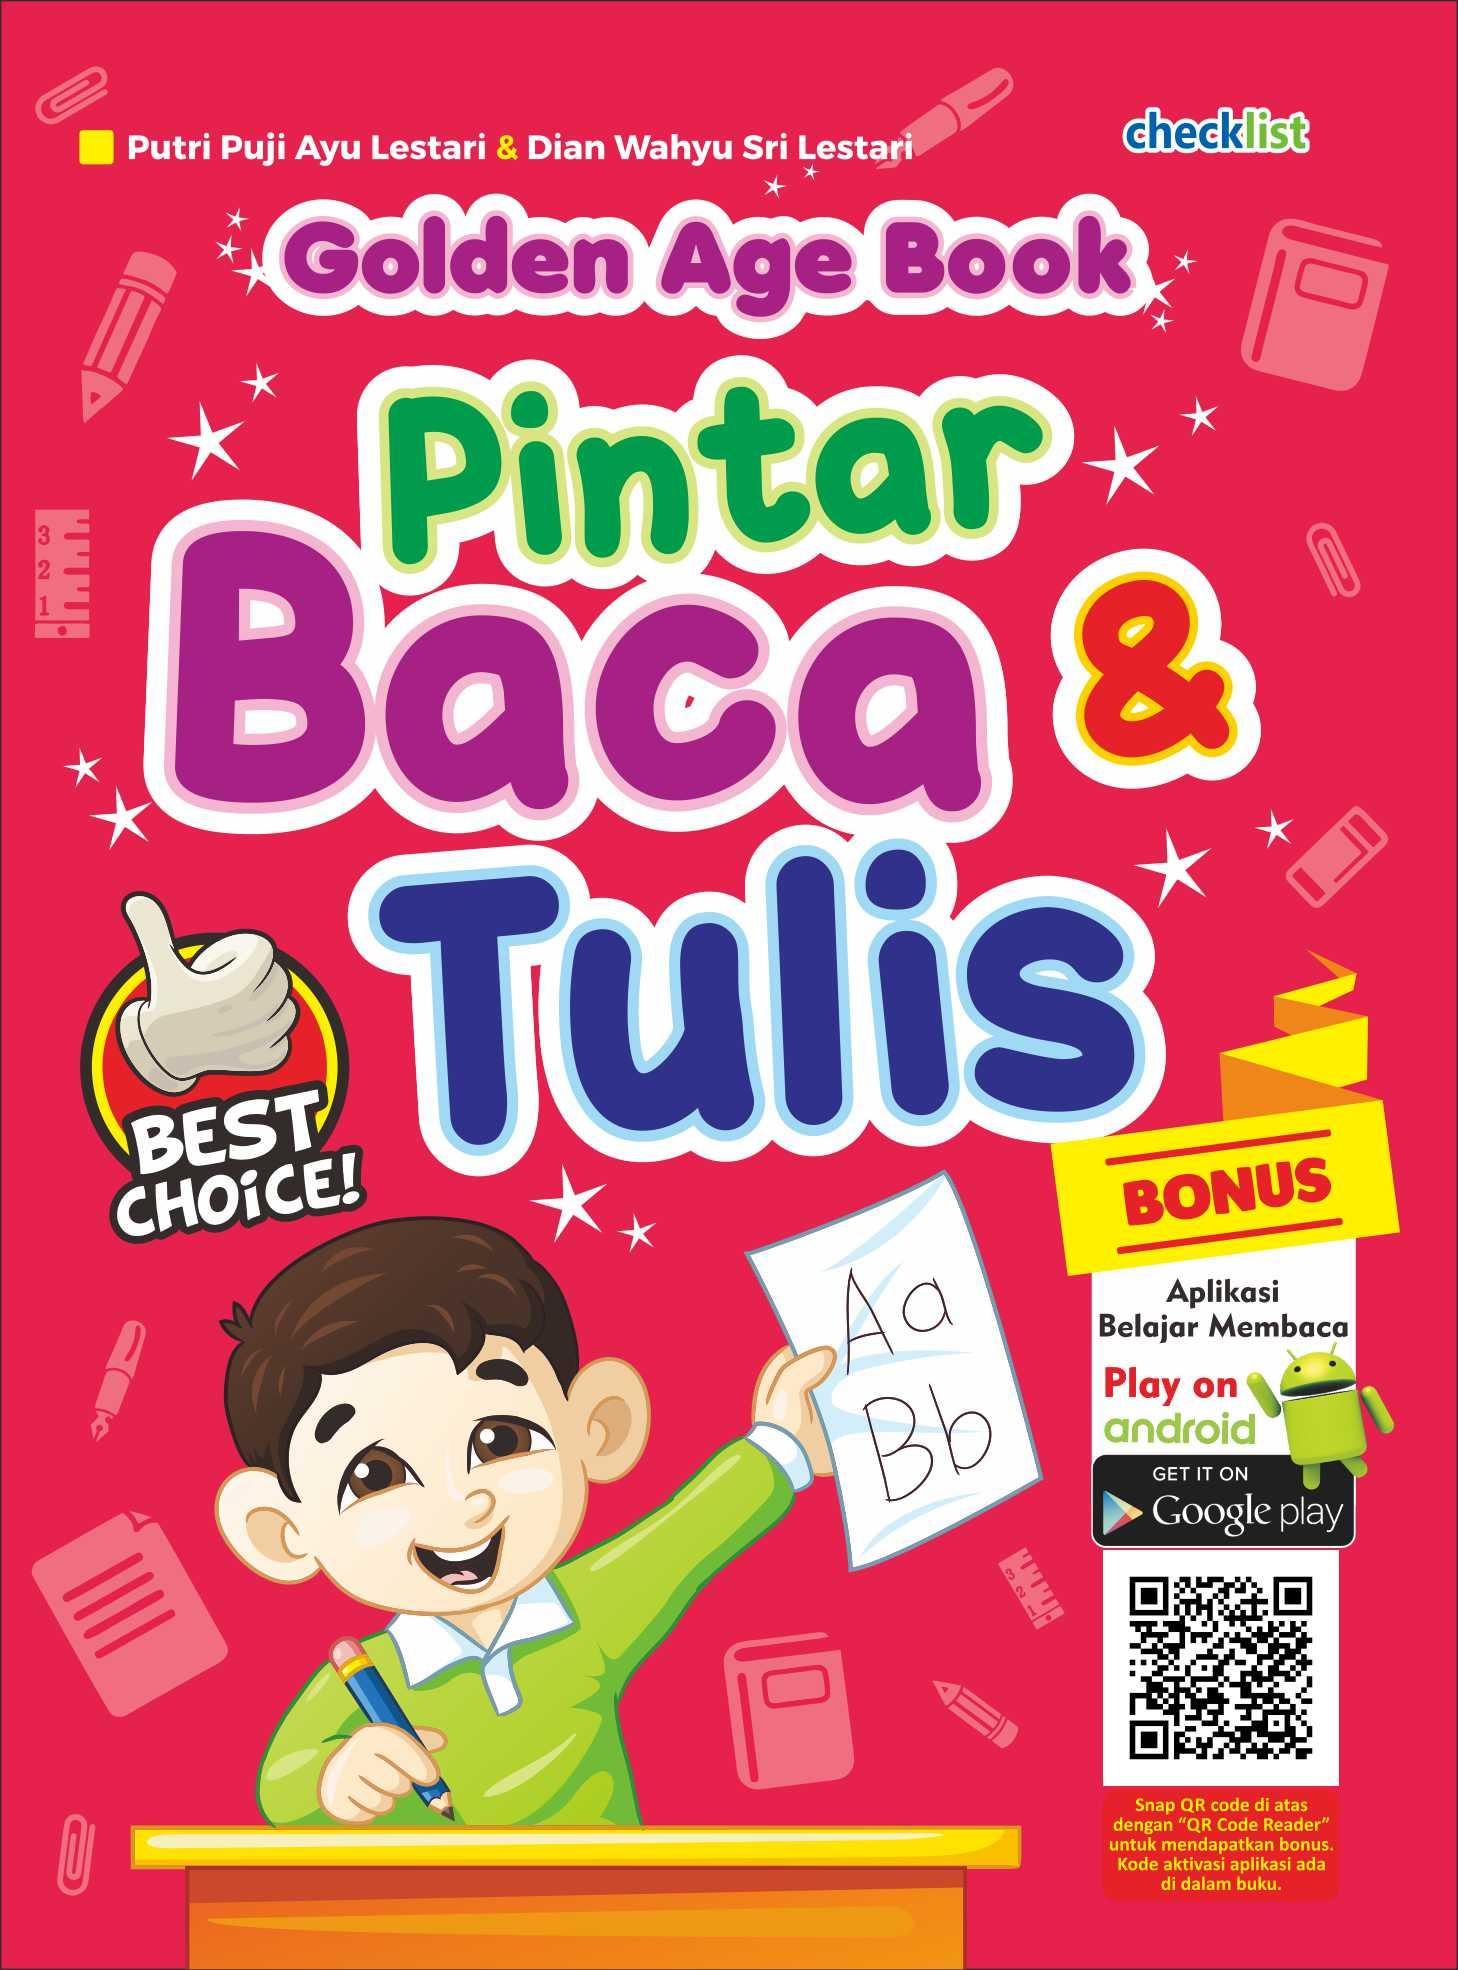 GOLDEN AGE BOOK PINTAR BACA & TULIS